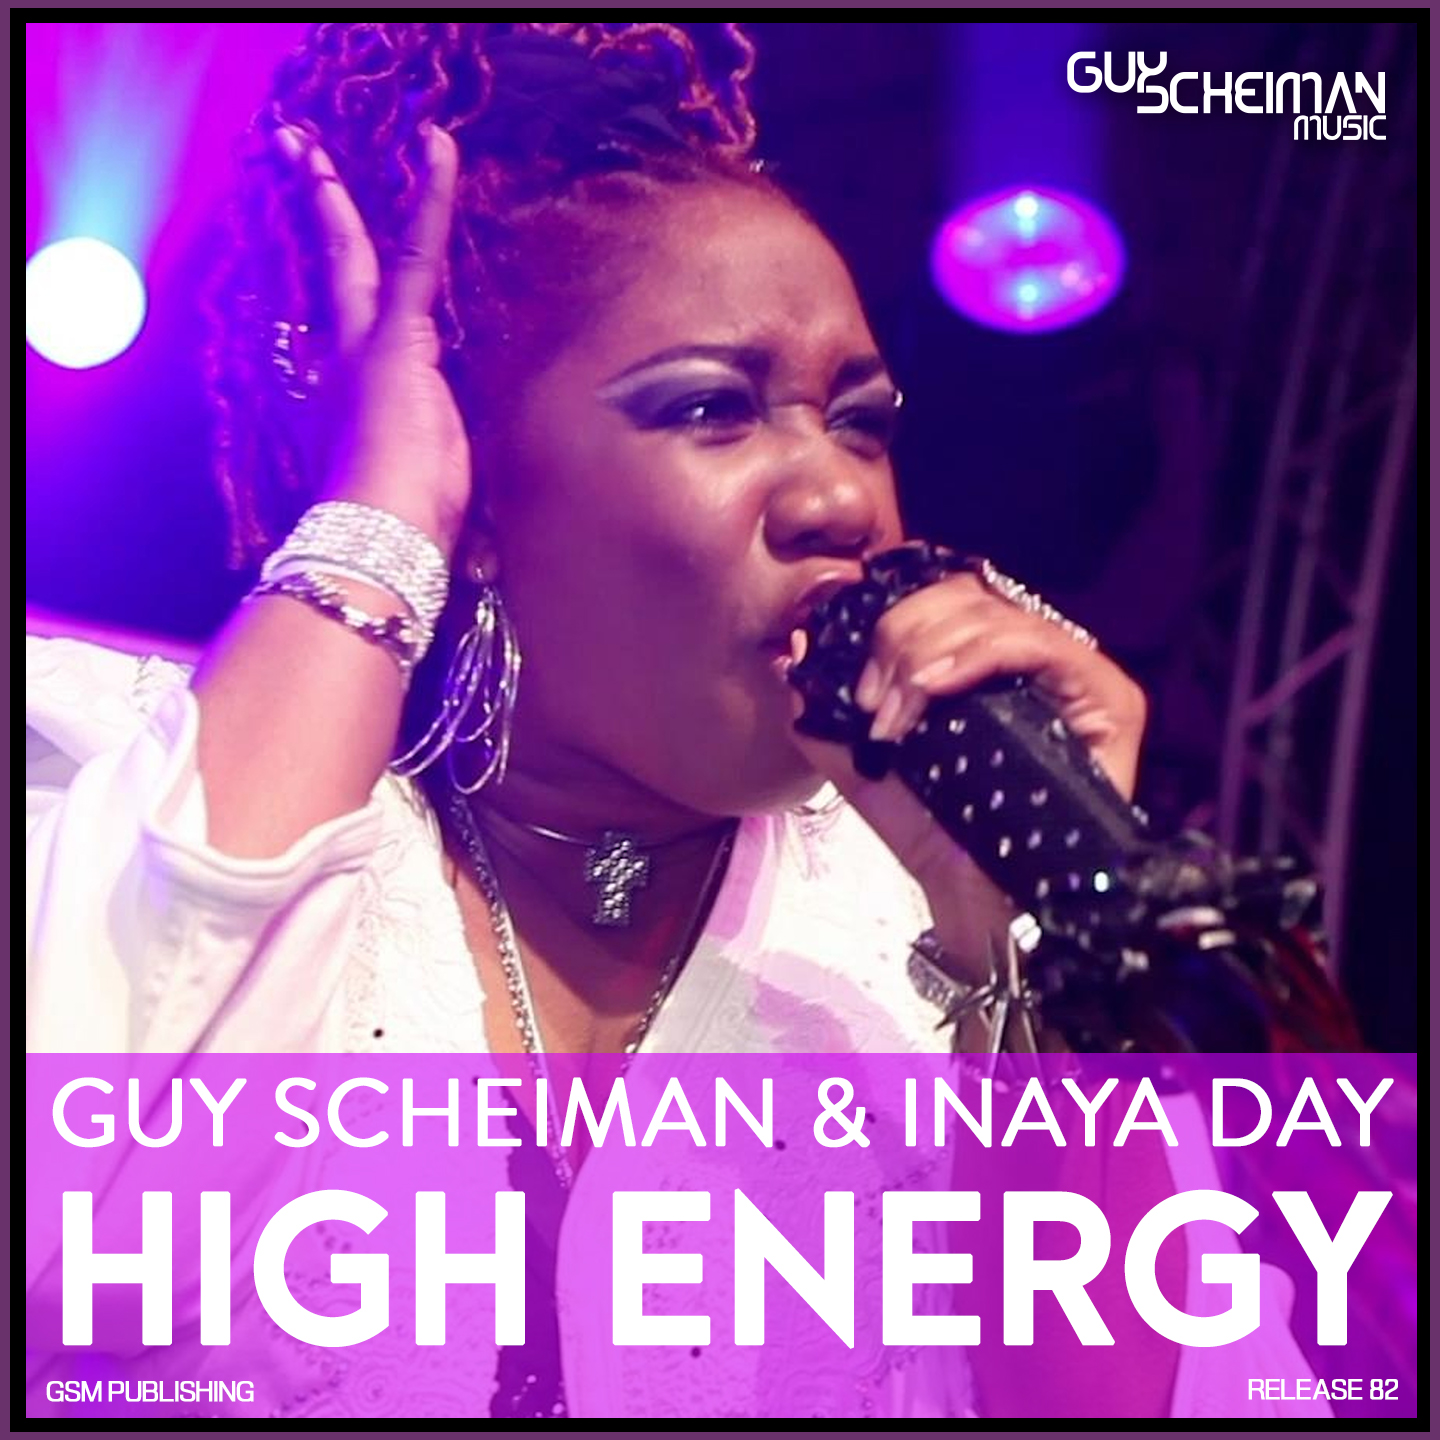 New Music Releases From Guy Scheiman Music